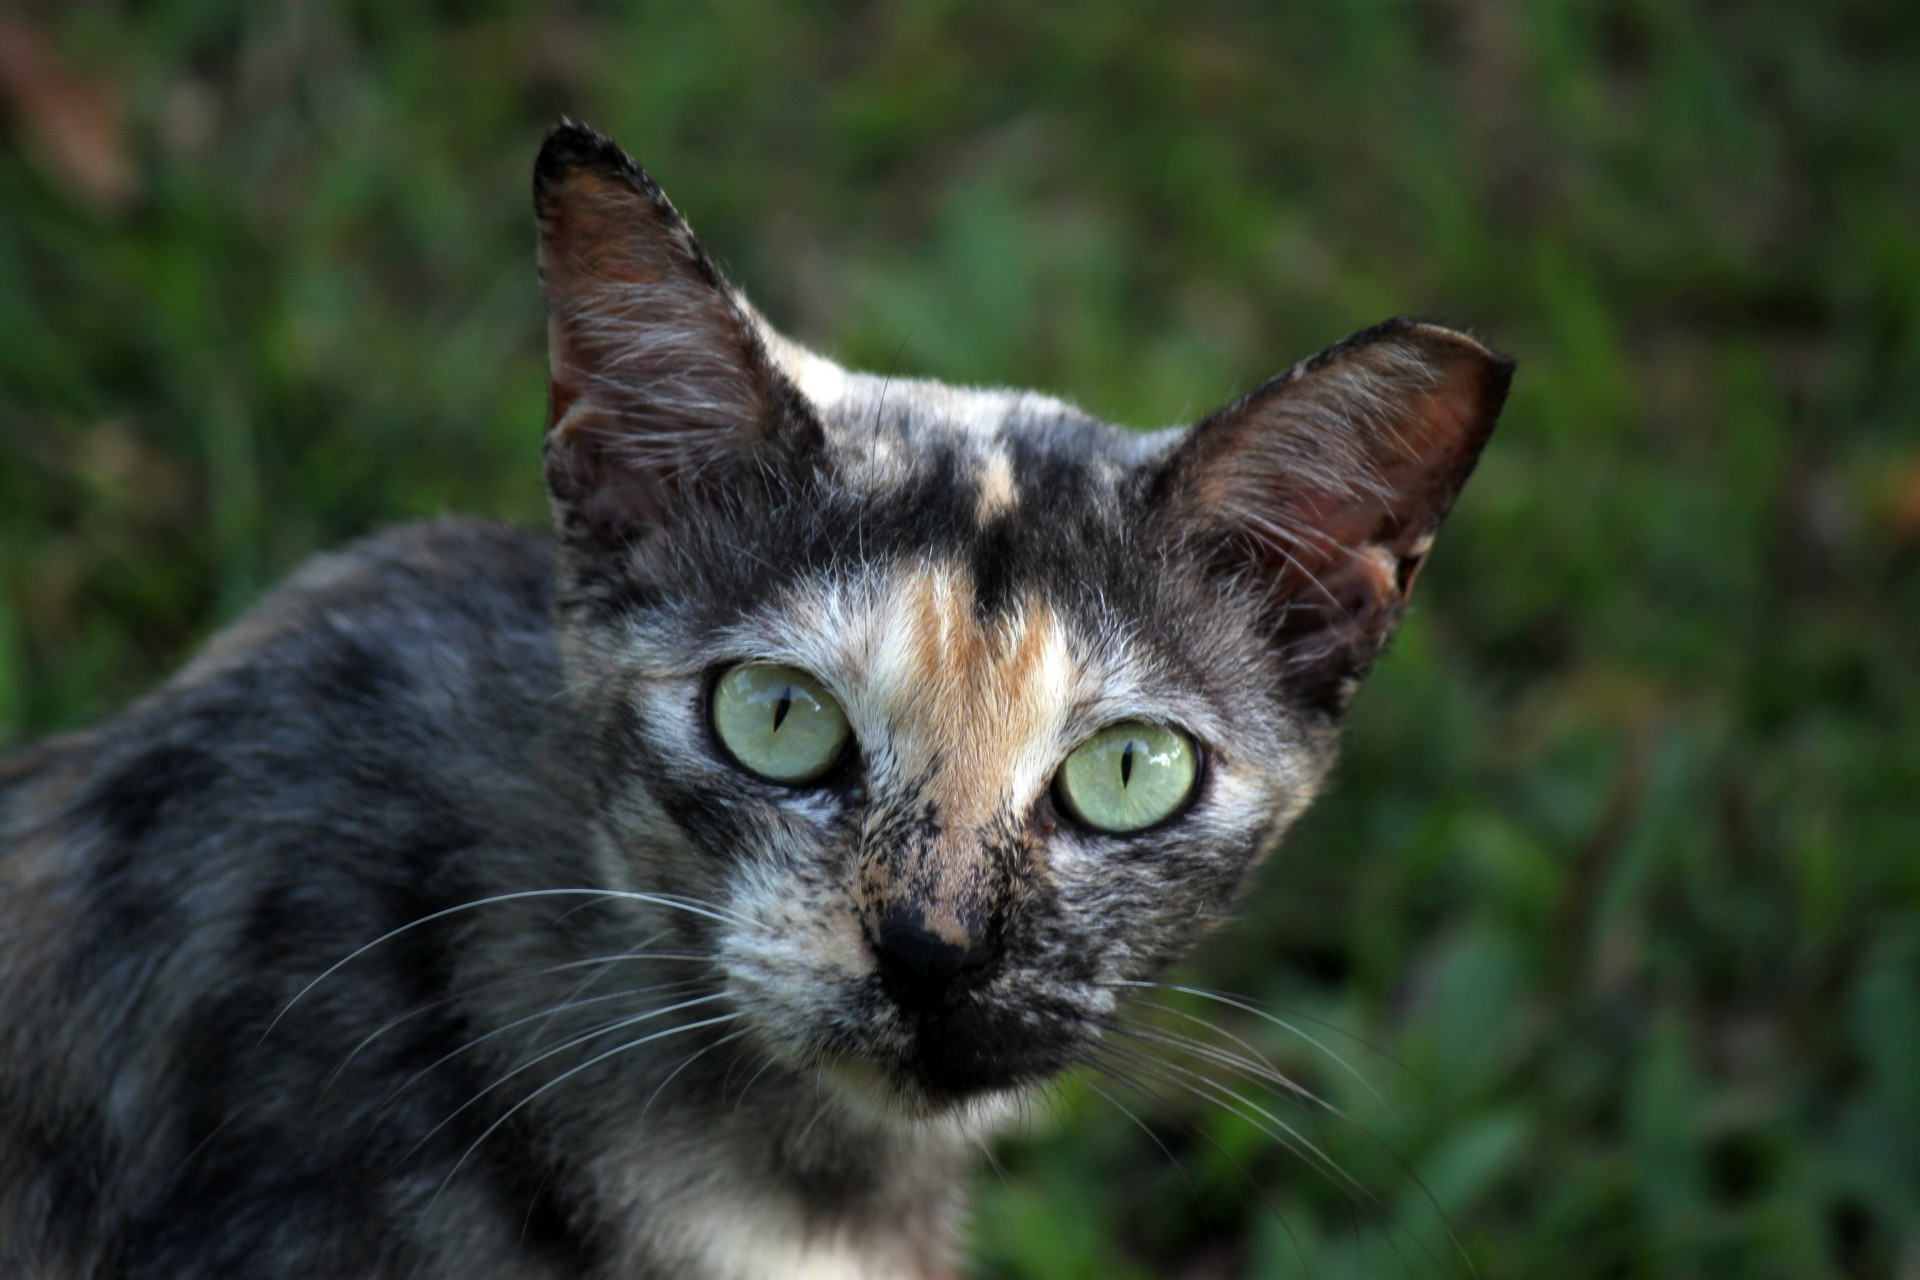 Castrated Wild Cat In Singapore Free Stock Photo.